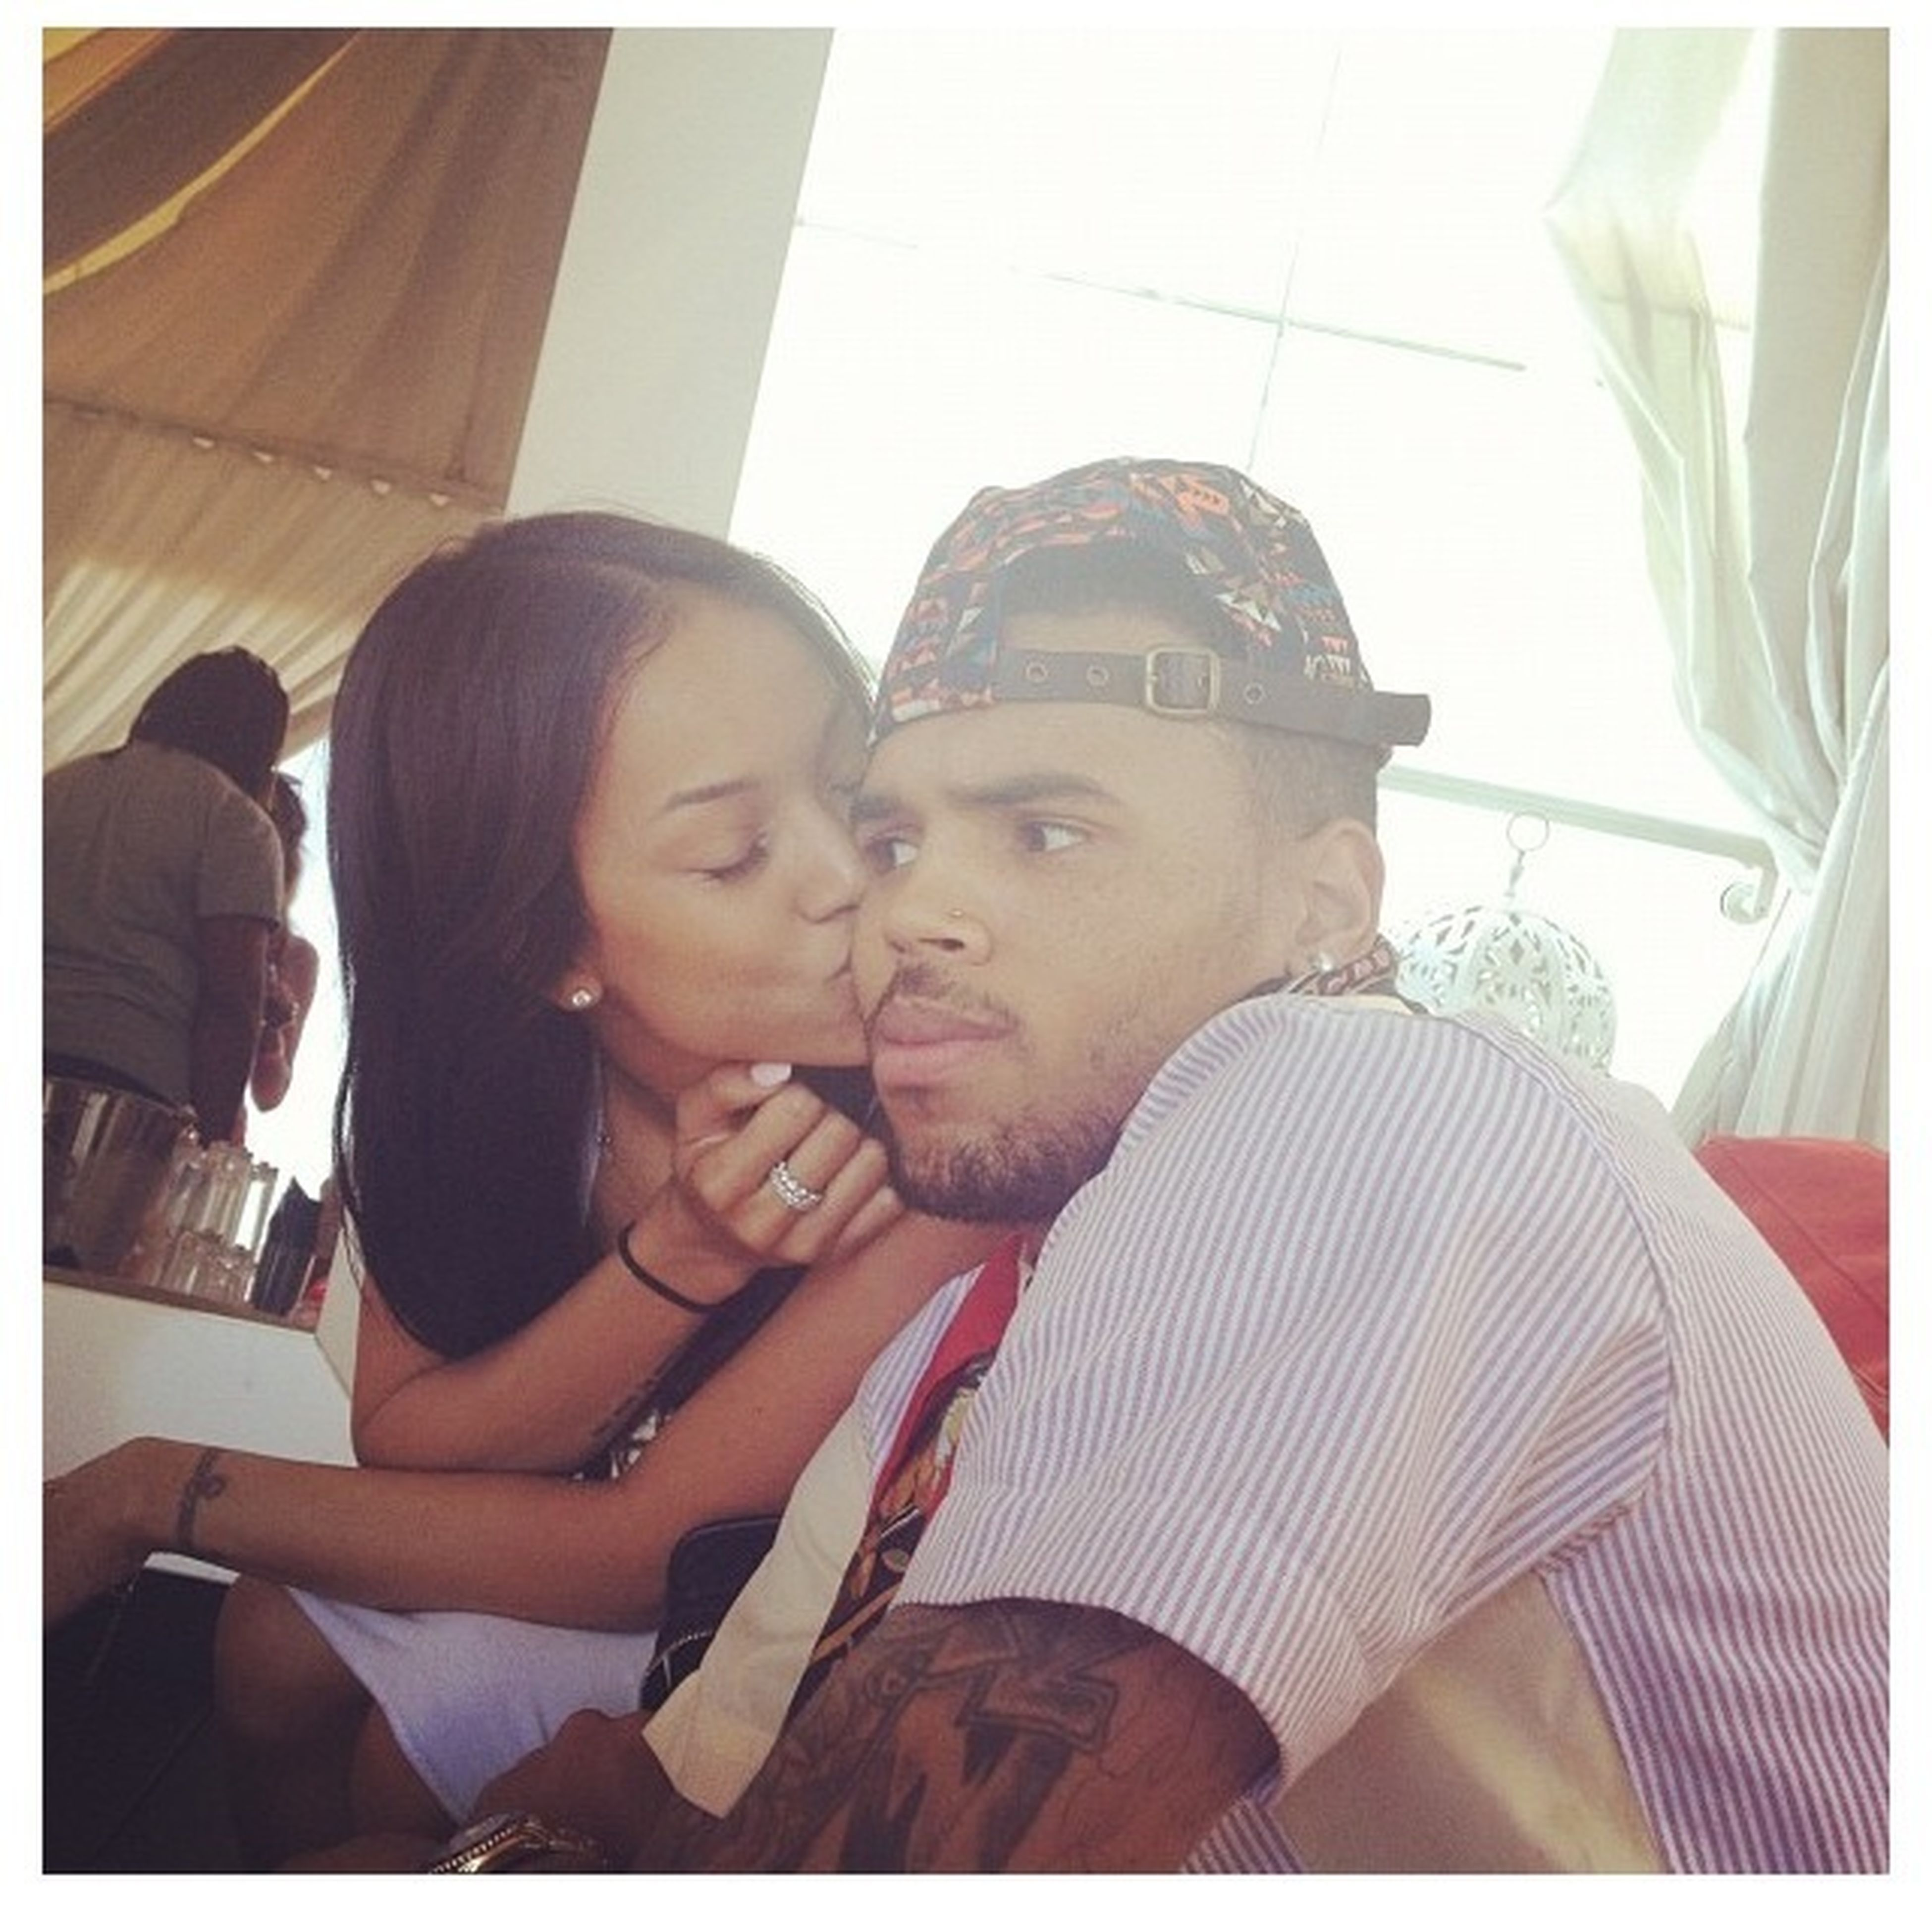 I Adore These Two #Karrueche #ChrisBrown